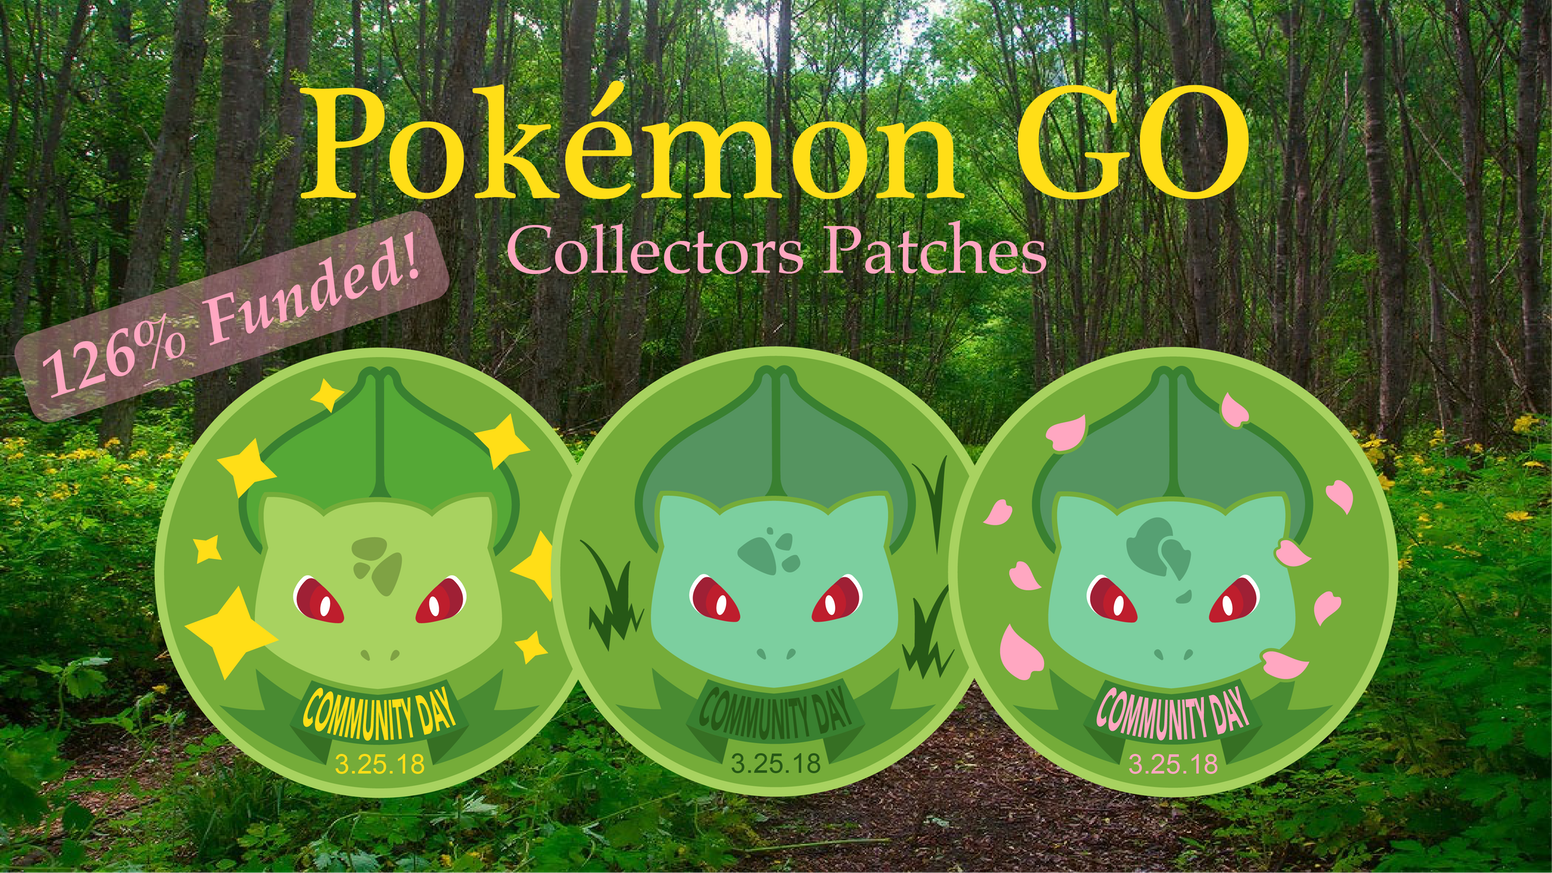 Pokemon Go Community Day Embroidered Patches by Wes